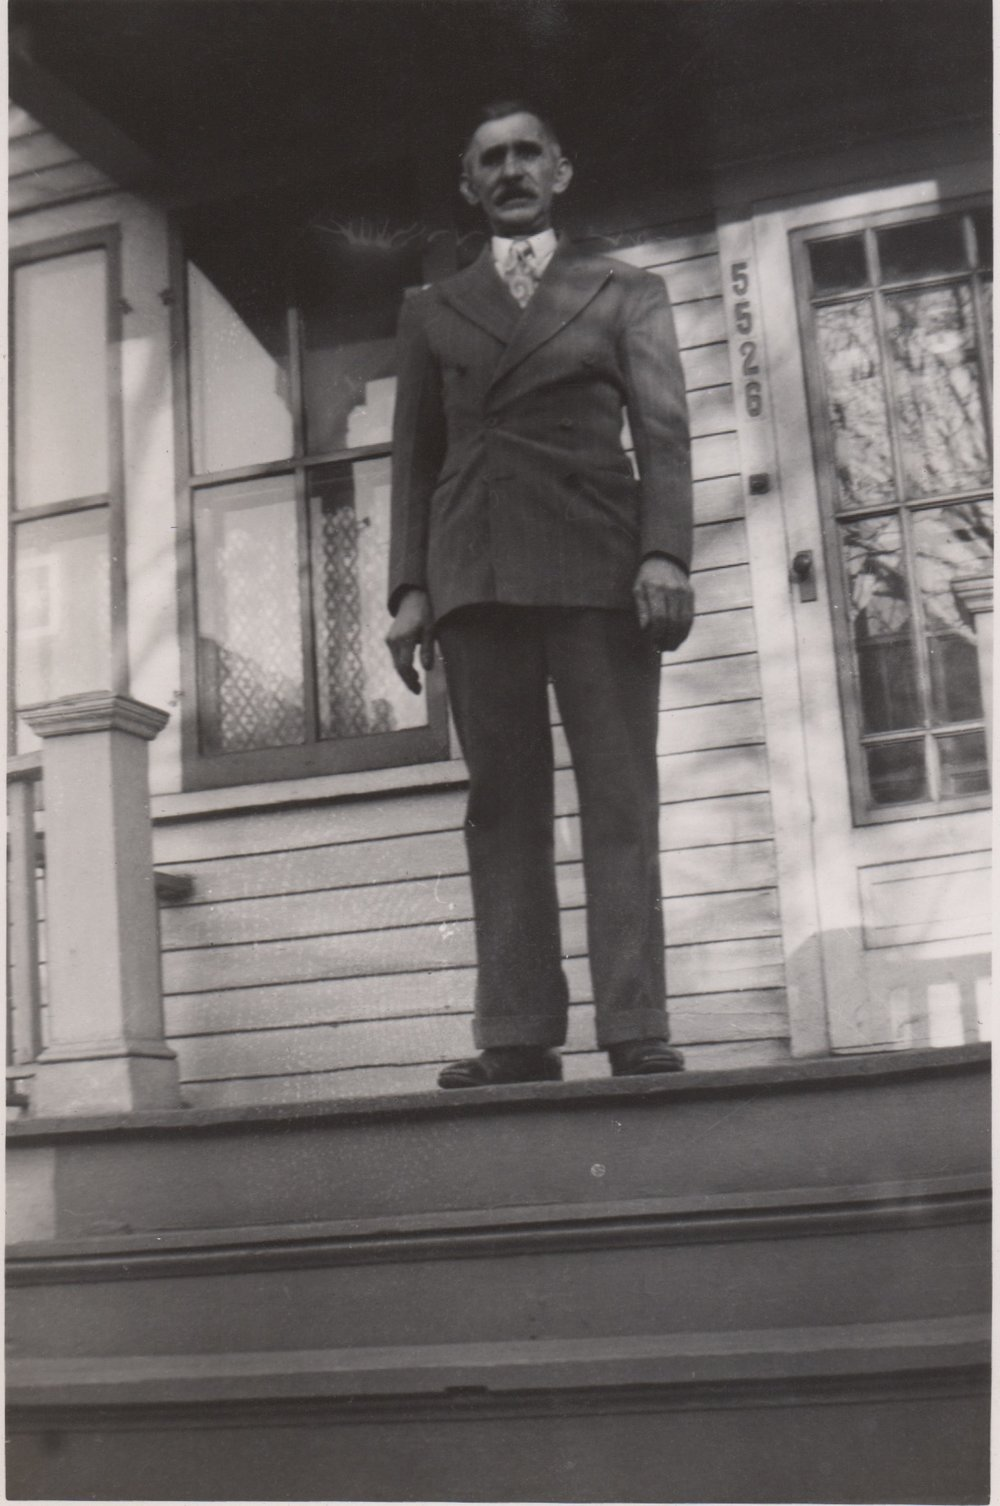 Adam at 5526 Dubois St. - late 1940s